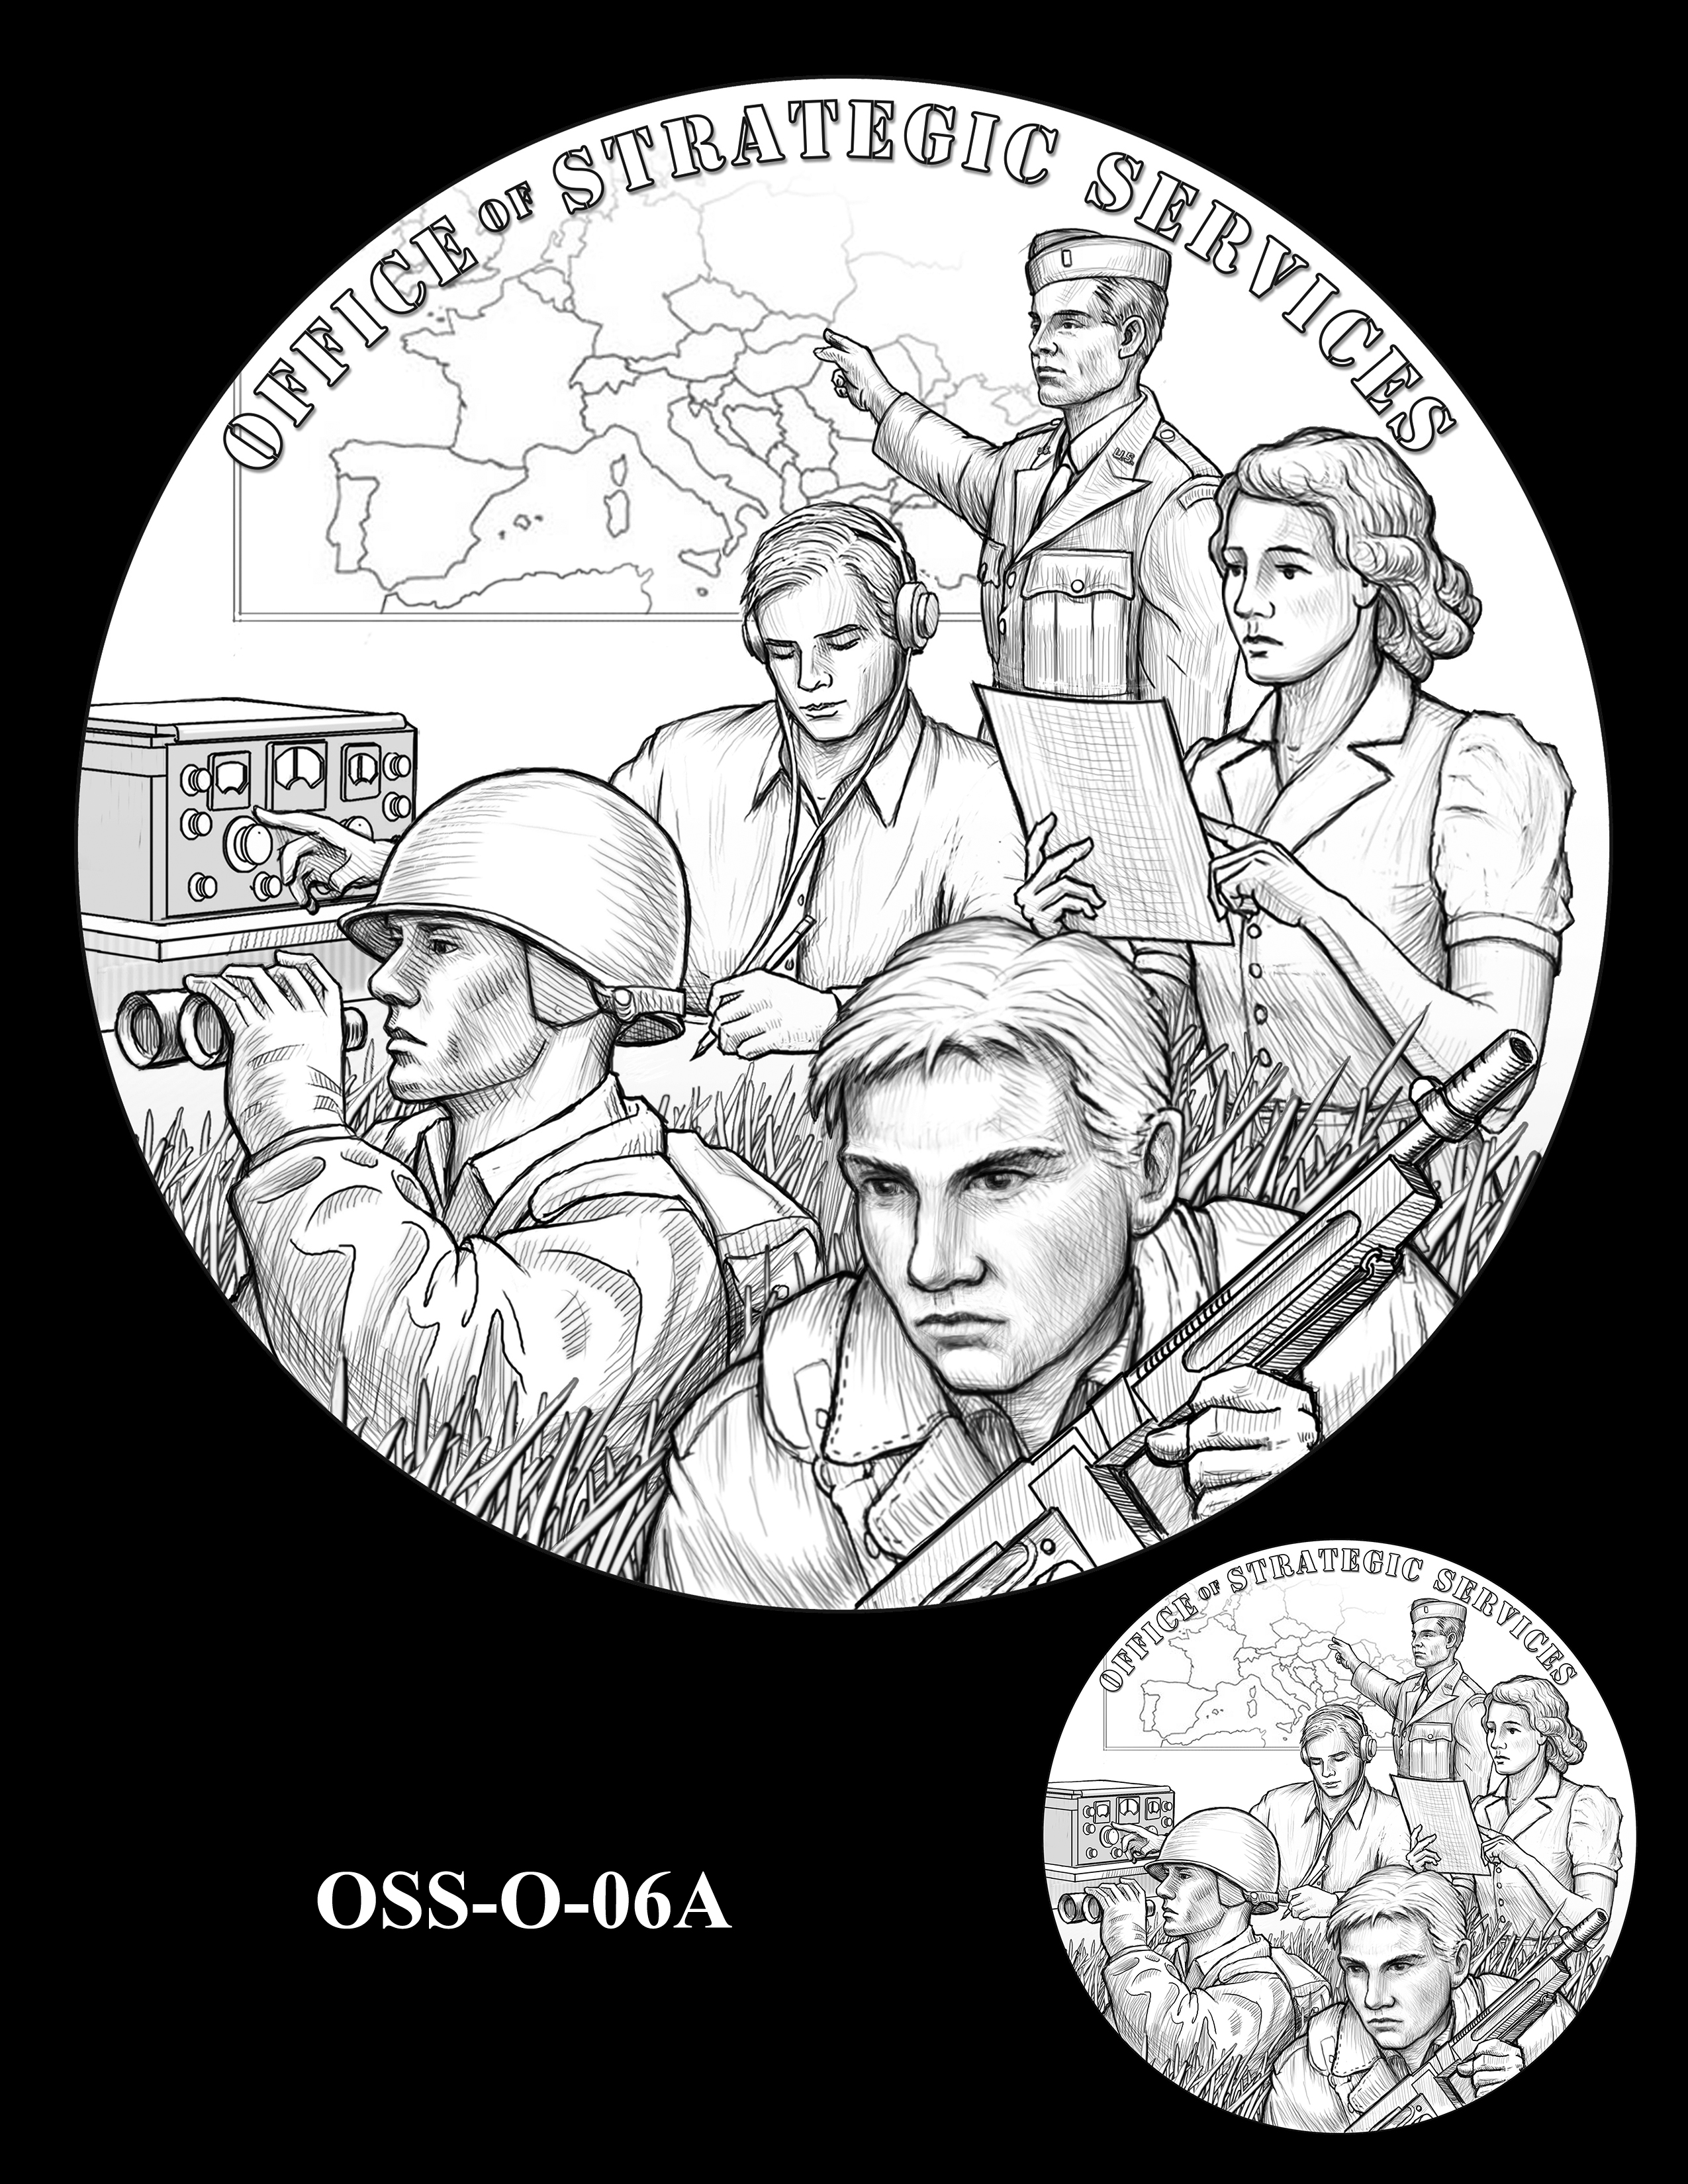 OSS-O-06A -- Office of Strategic Services Congressional Gold Medal